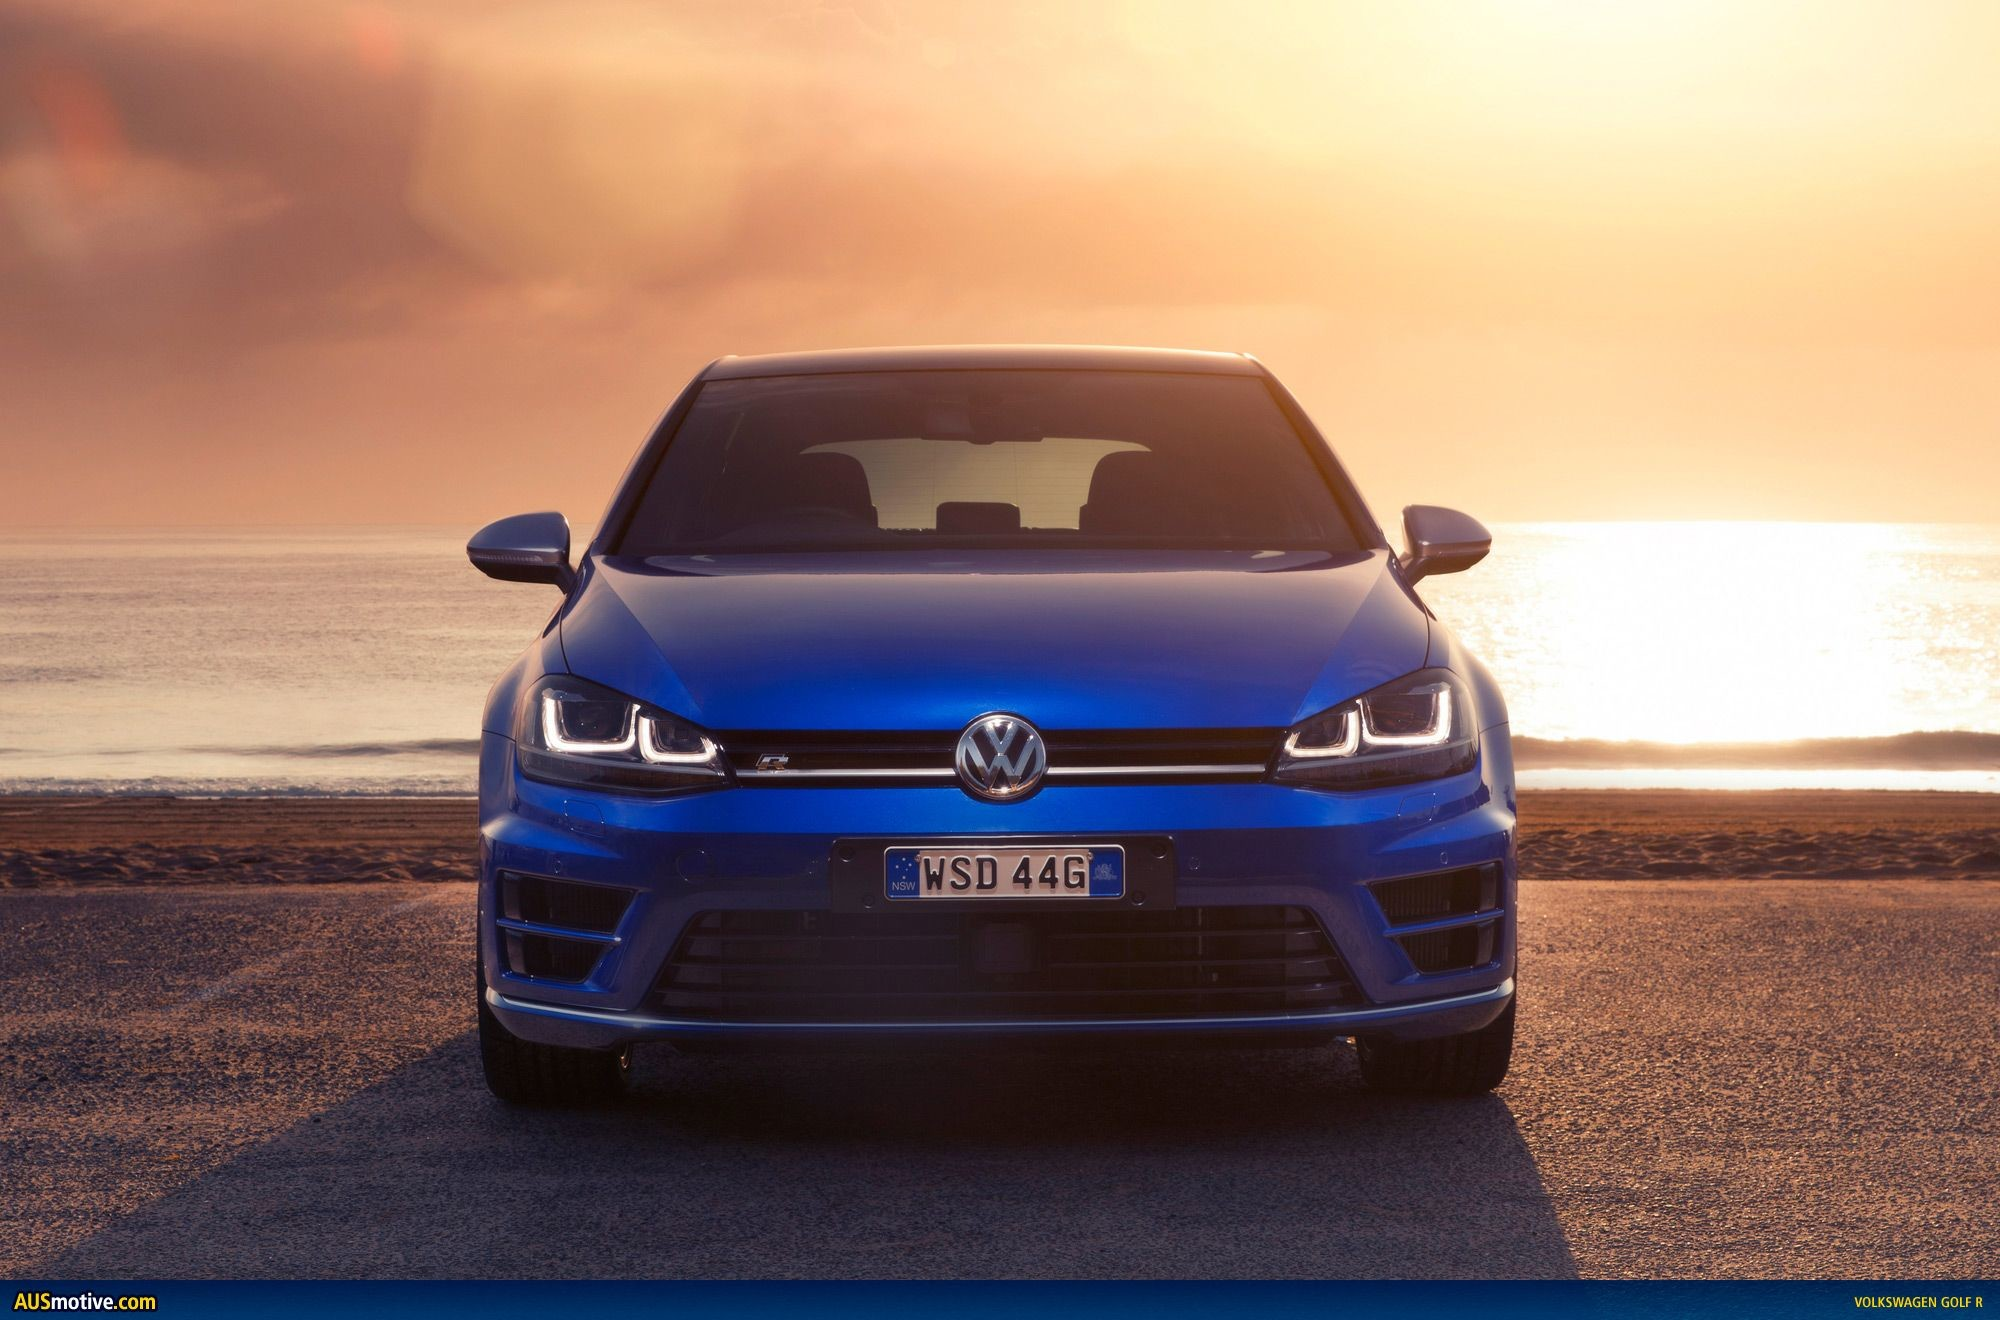 2000x1320 Volkswagen Golf R Car Wallpapers